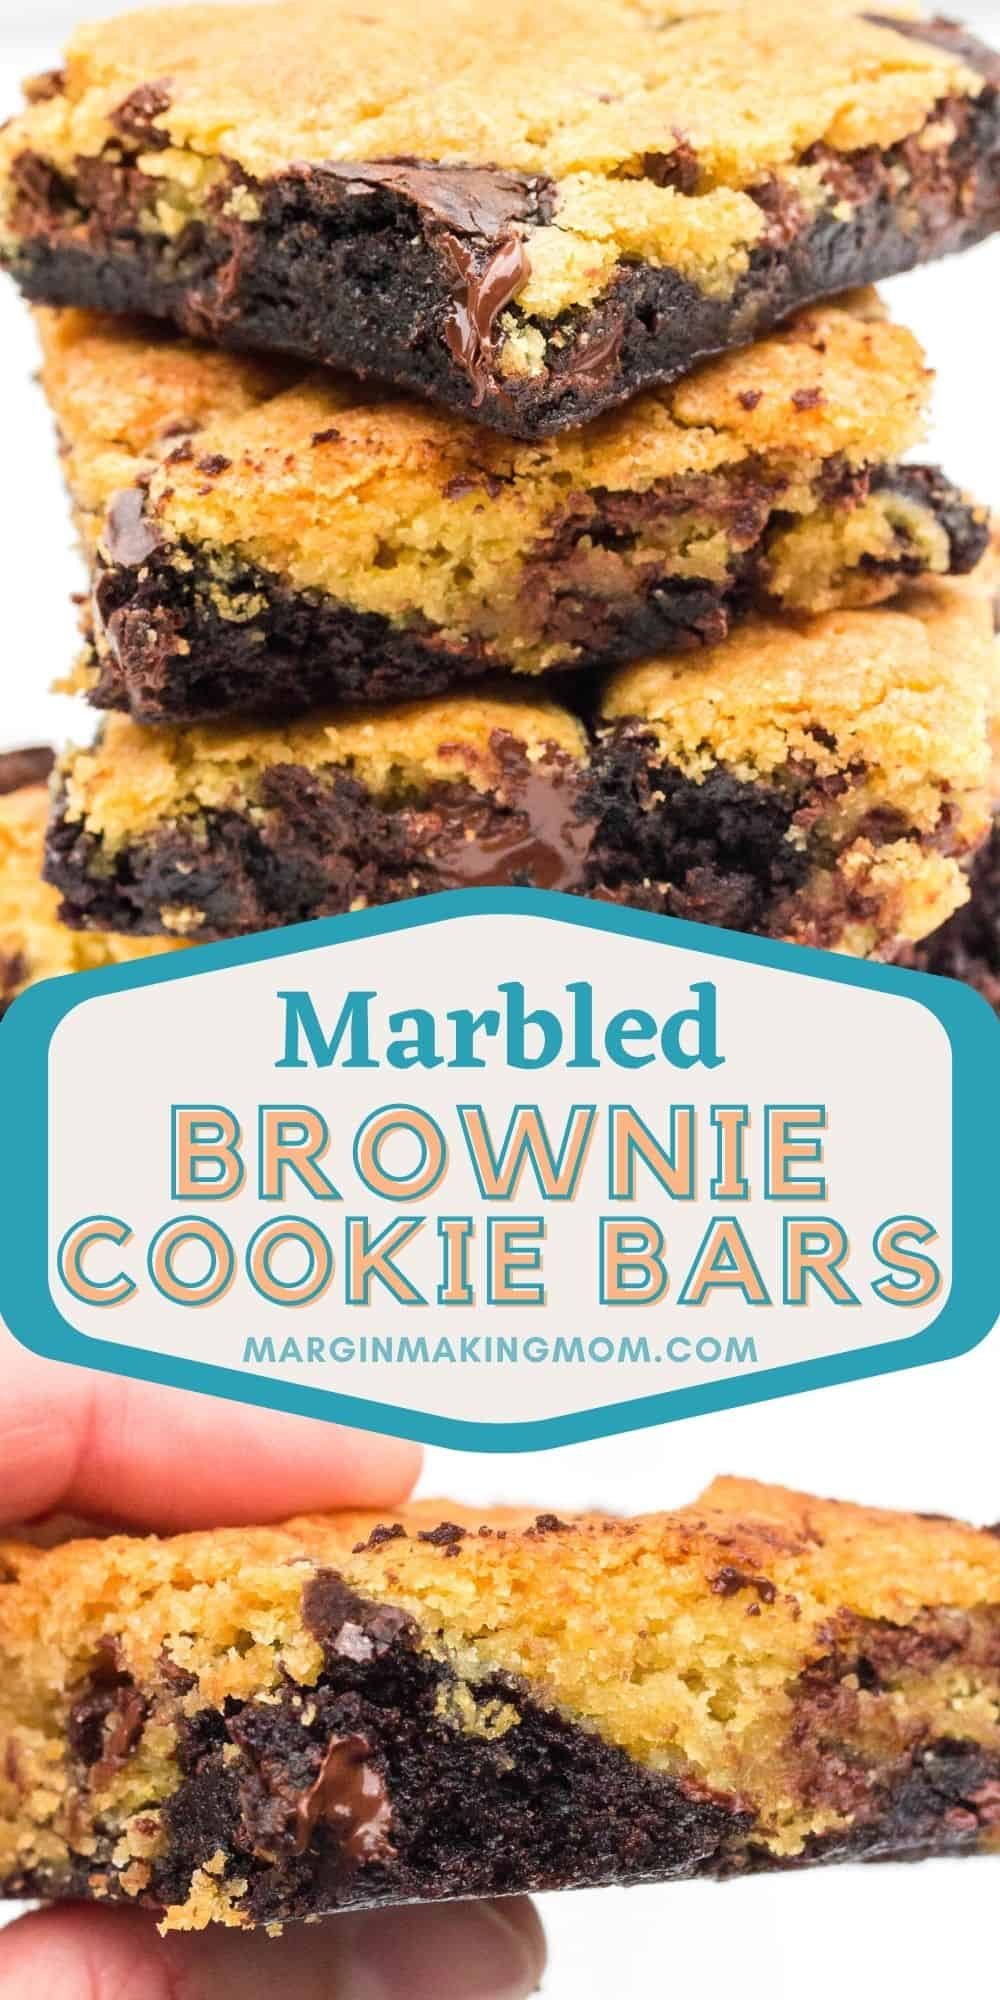 collage image featuring two photos of marbled brownie cookie bars--one is a stack of bars and the other of fingers holding a bar